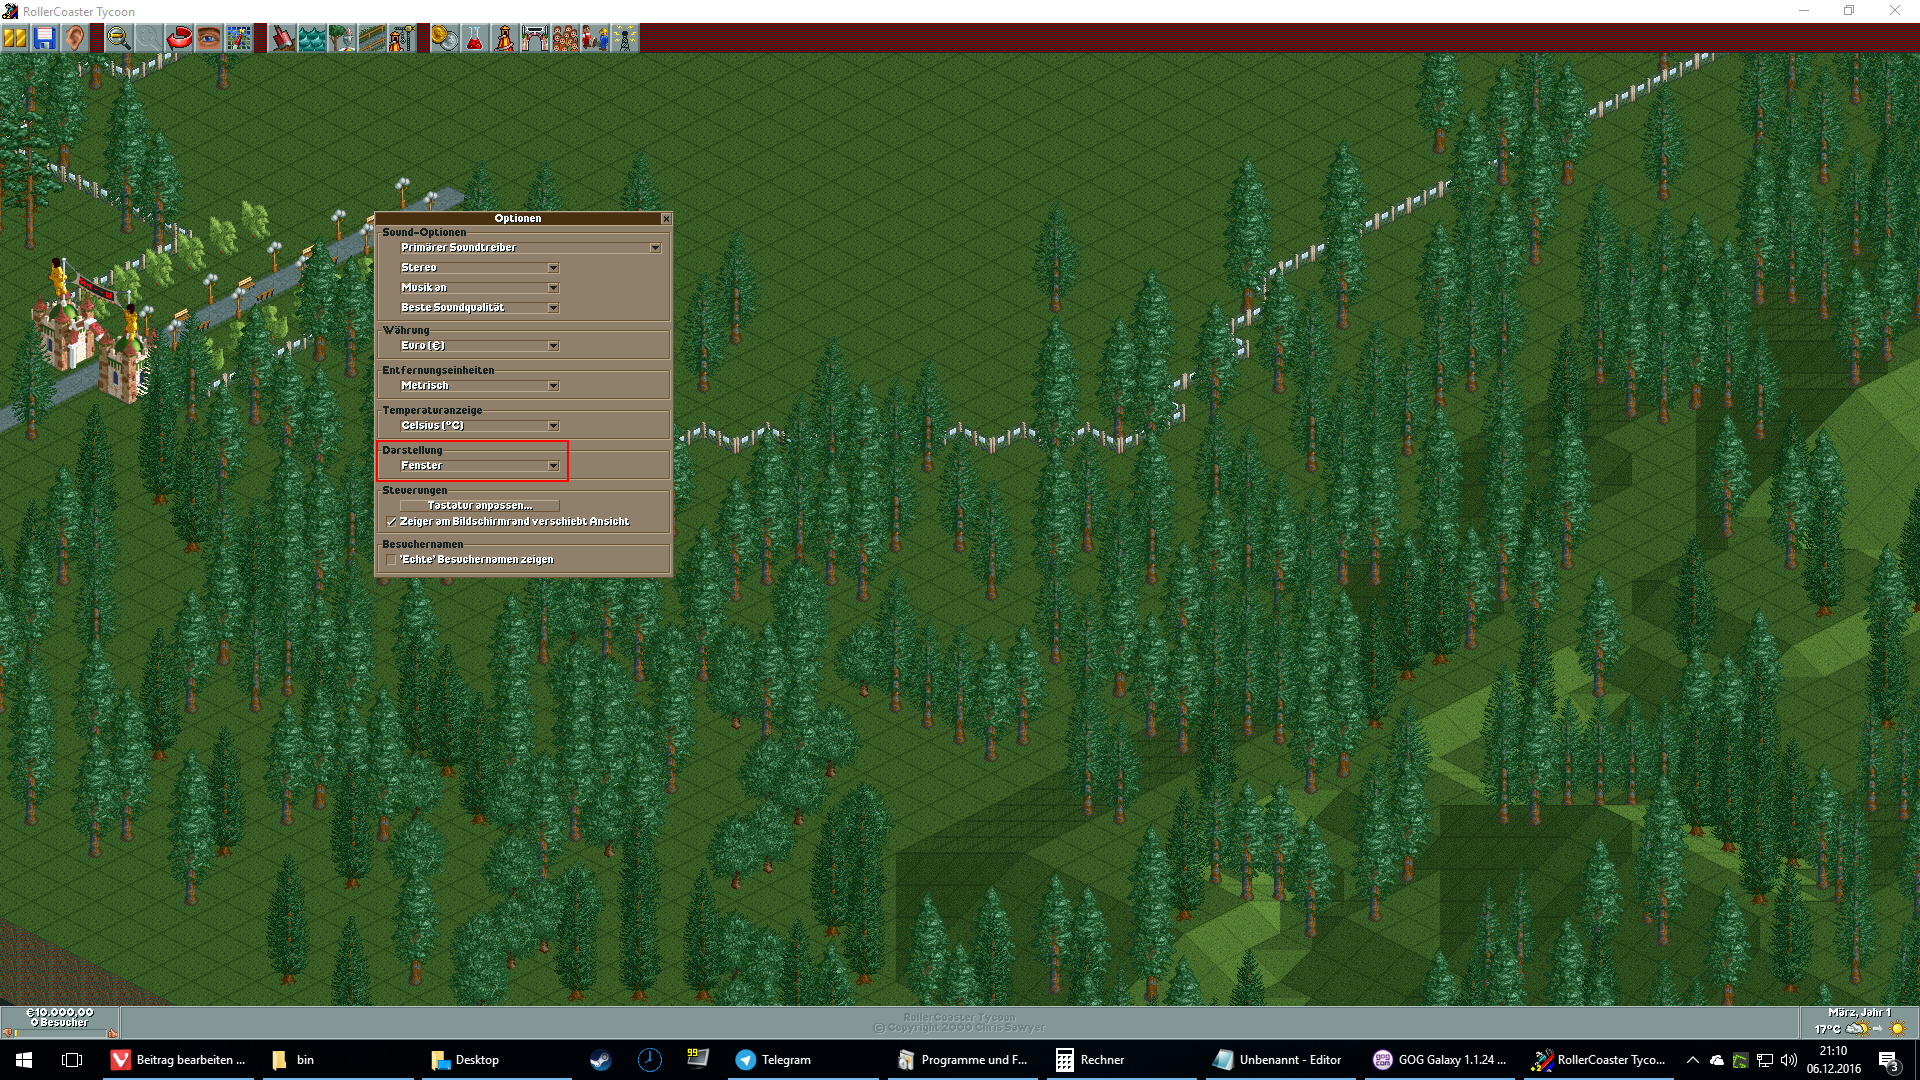 RollerCoaster Tycoon Widescreen Support